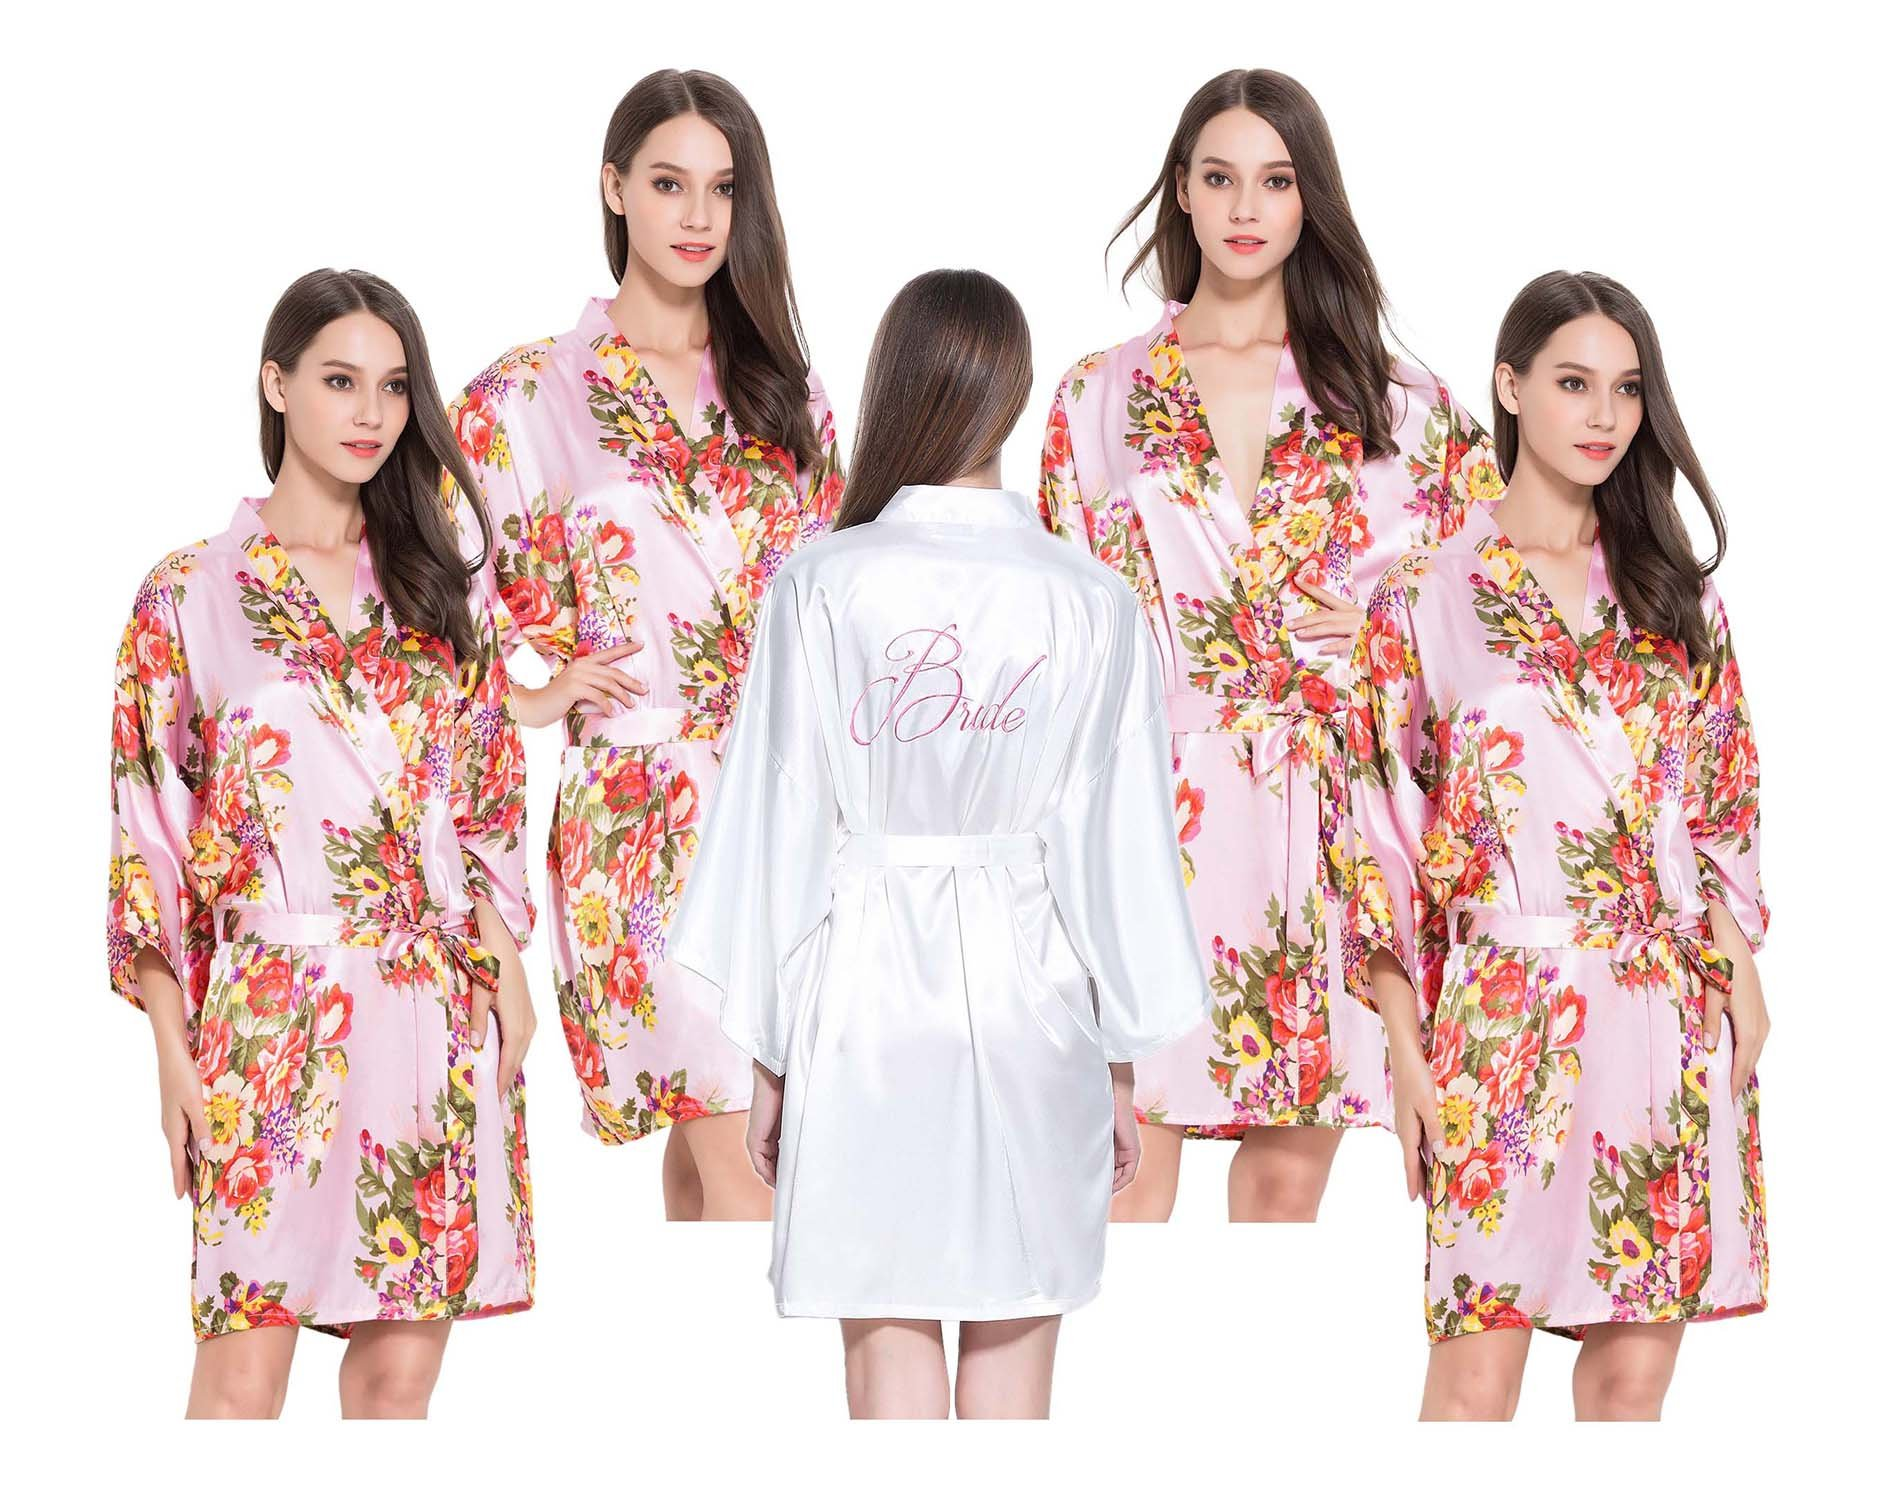 Modern Celebrations 5 Satin Robes, 1 Ivory Bride, 4 Pink Floral Bridesmaid, One Size Fits 0-14